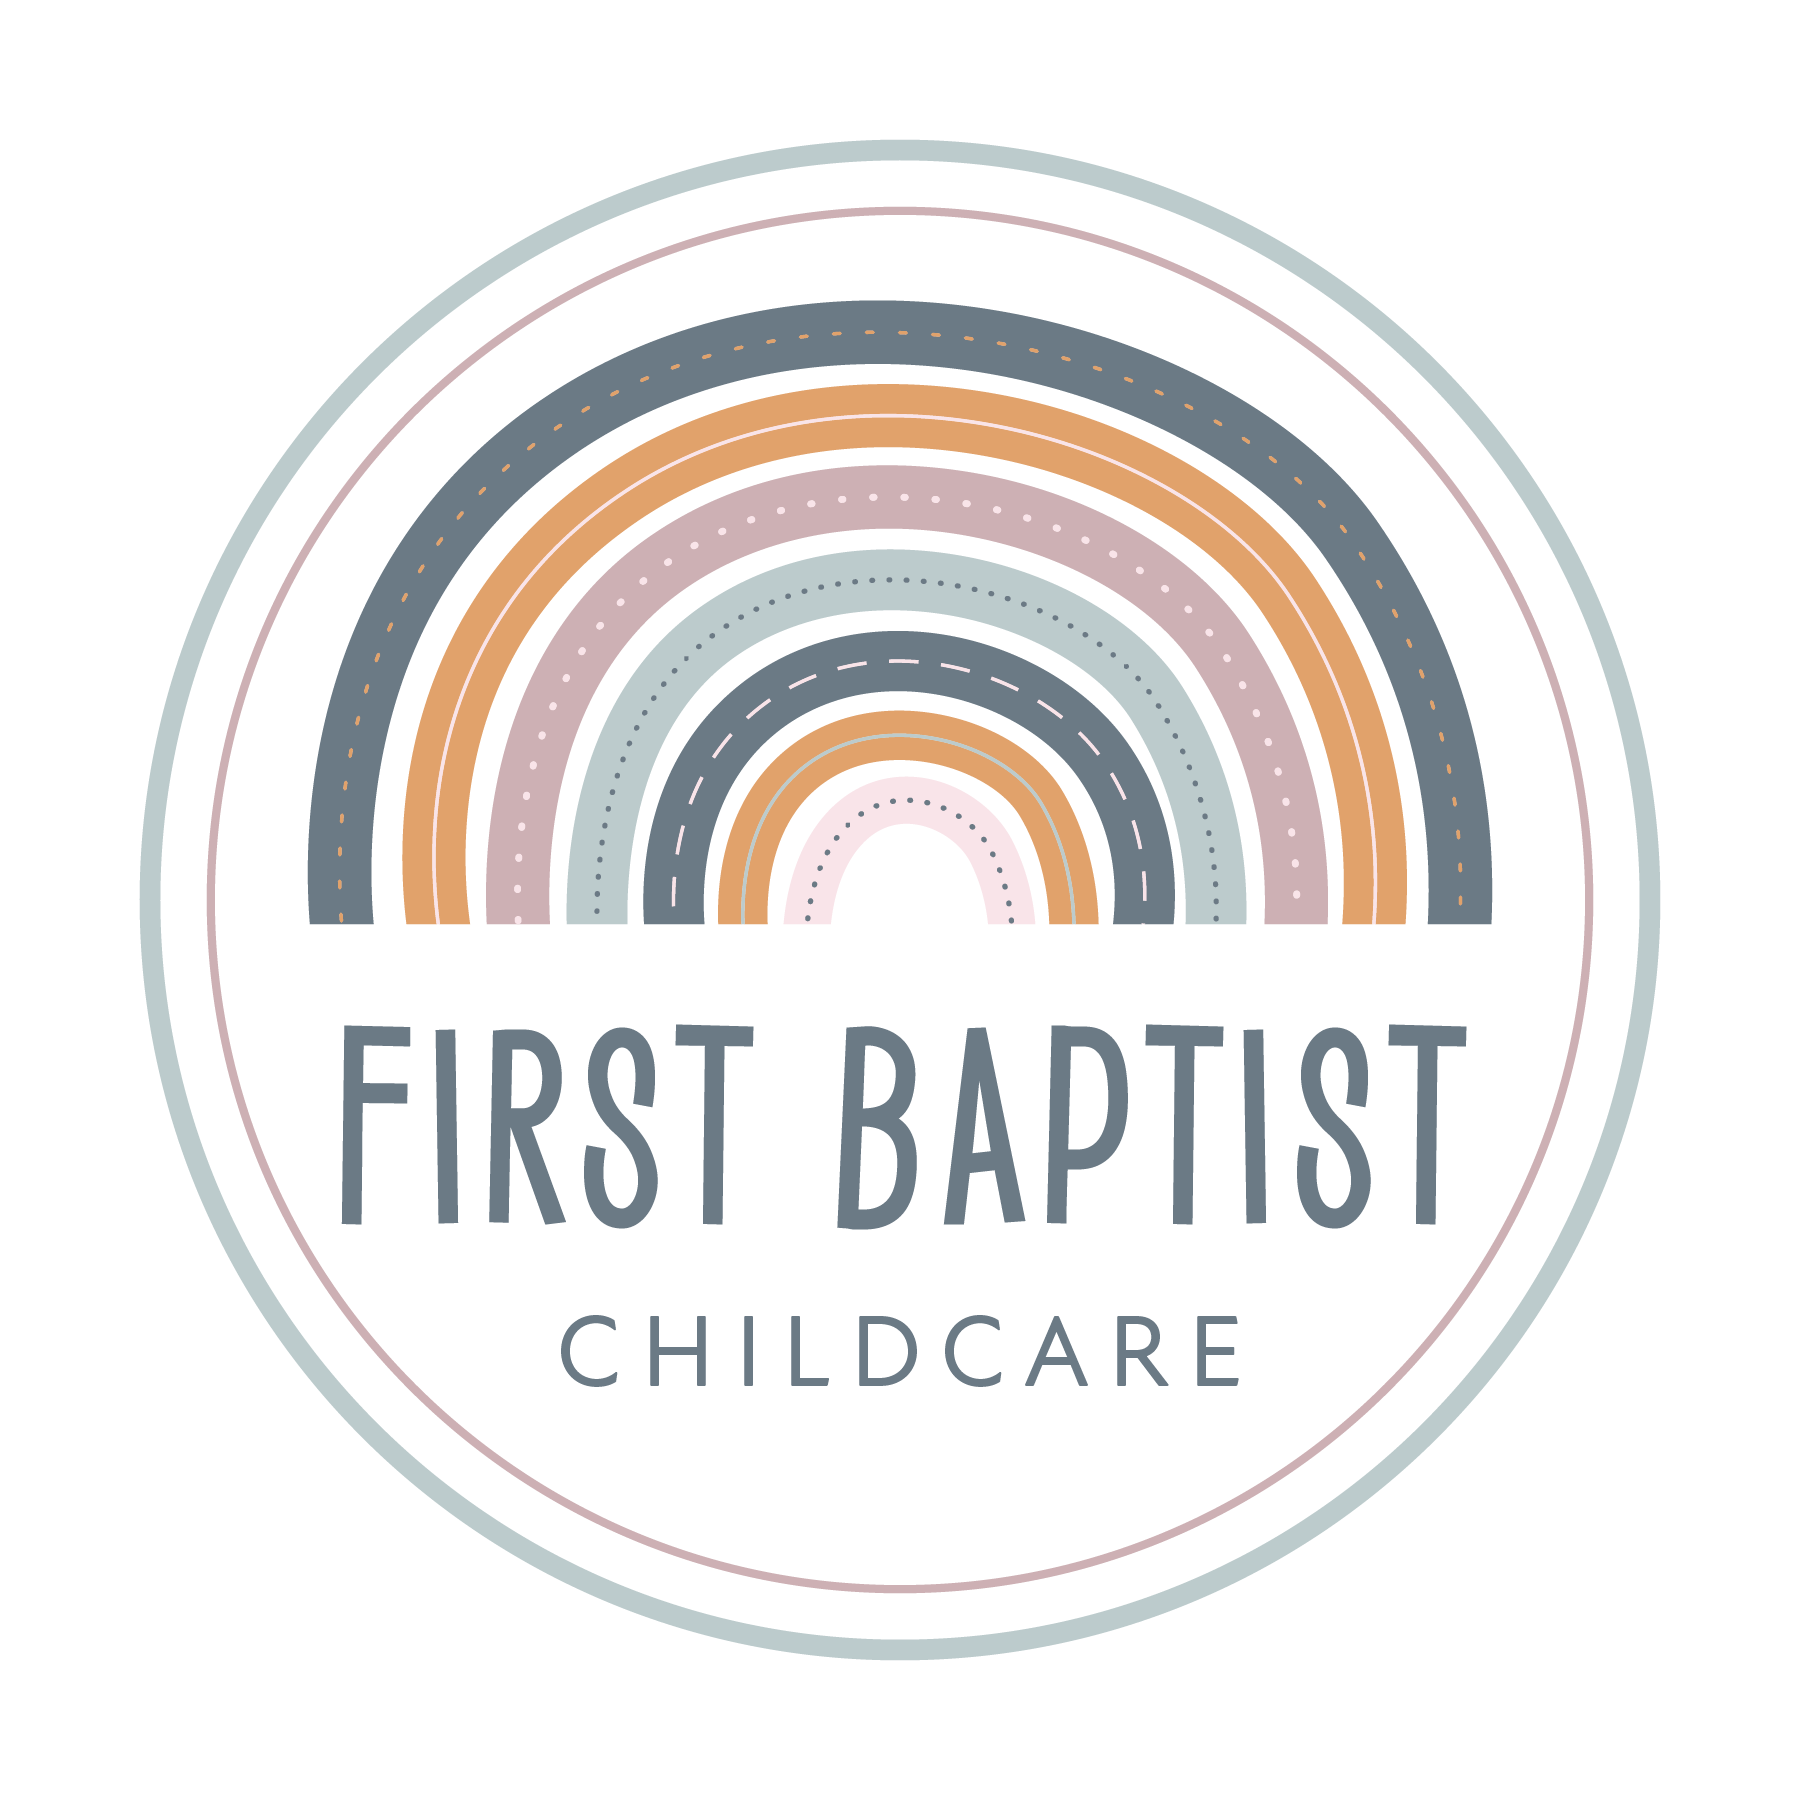 First Baptist Church Child Care Center